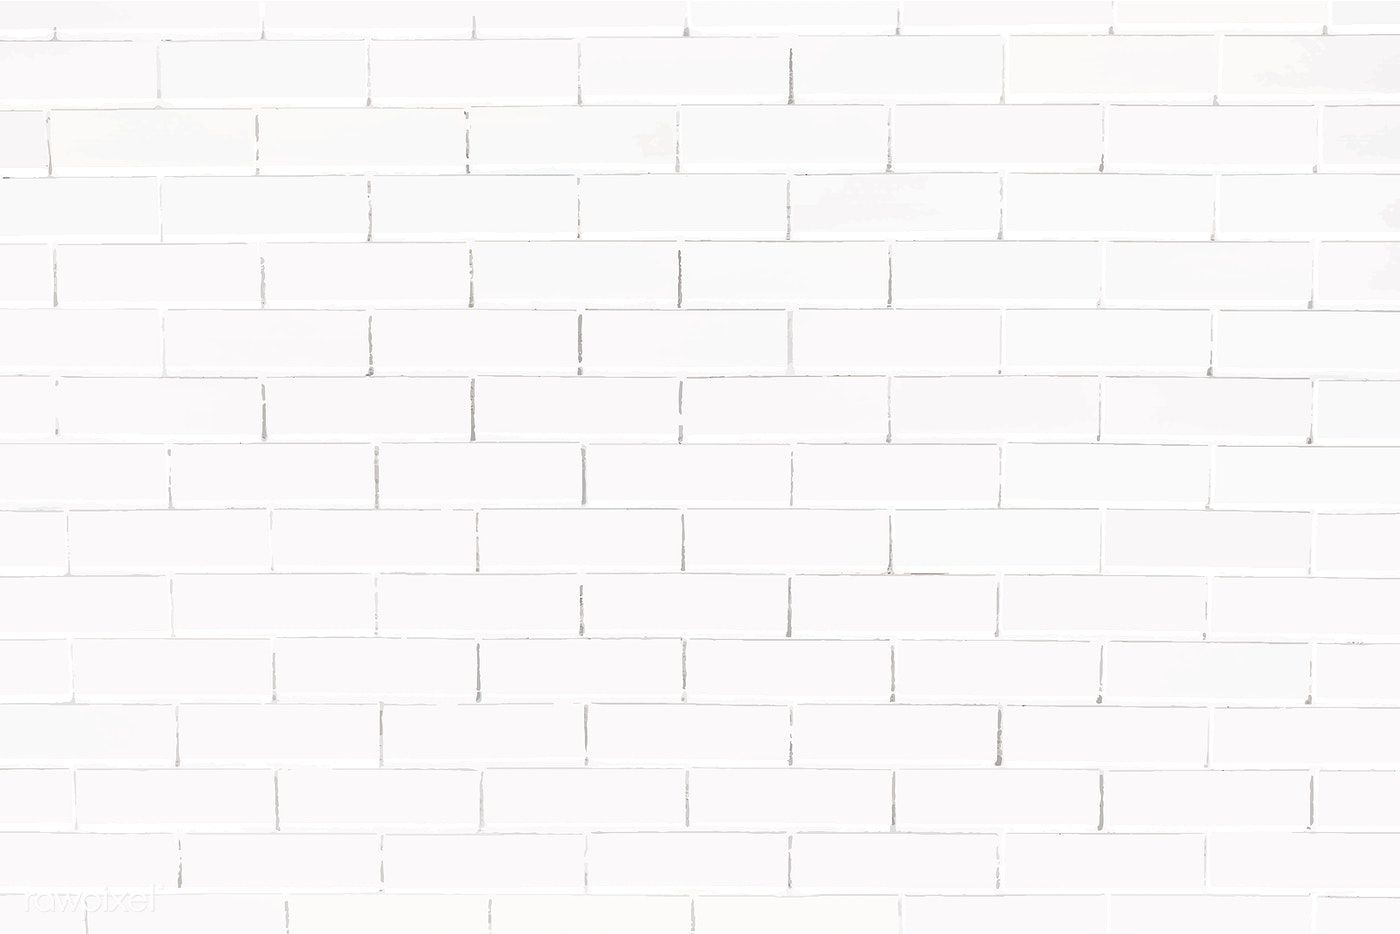 White Brick Wall Textured Background Vector Free Image By Rawpixel Com Aom Woraluck Chim Kung Ploy White Brick Walls Black Brick Wall White Brick